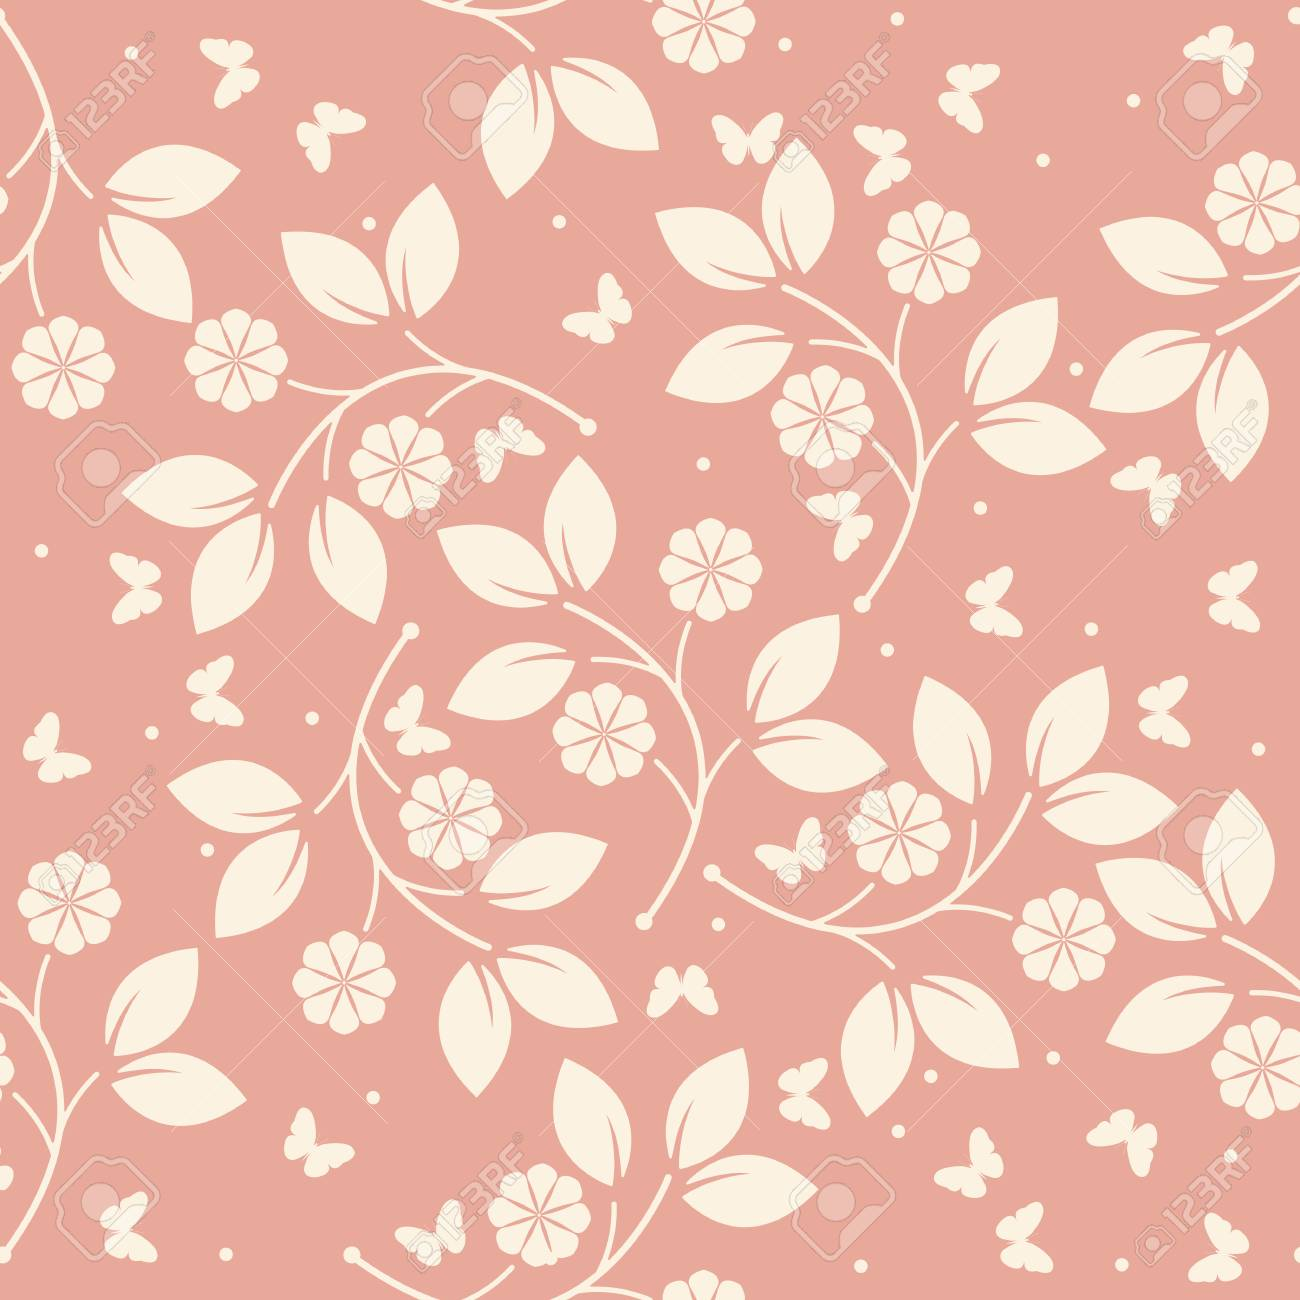 Stylish Endless Pattern With Butterflies Flowers And Leaves